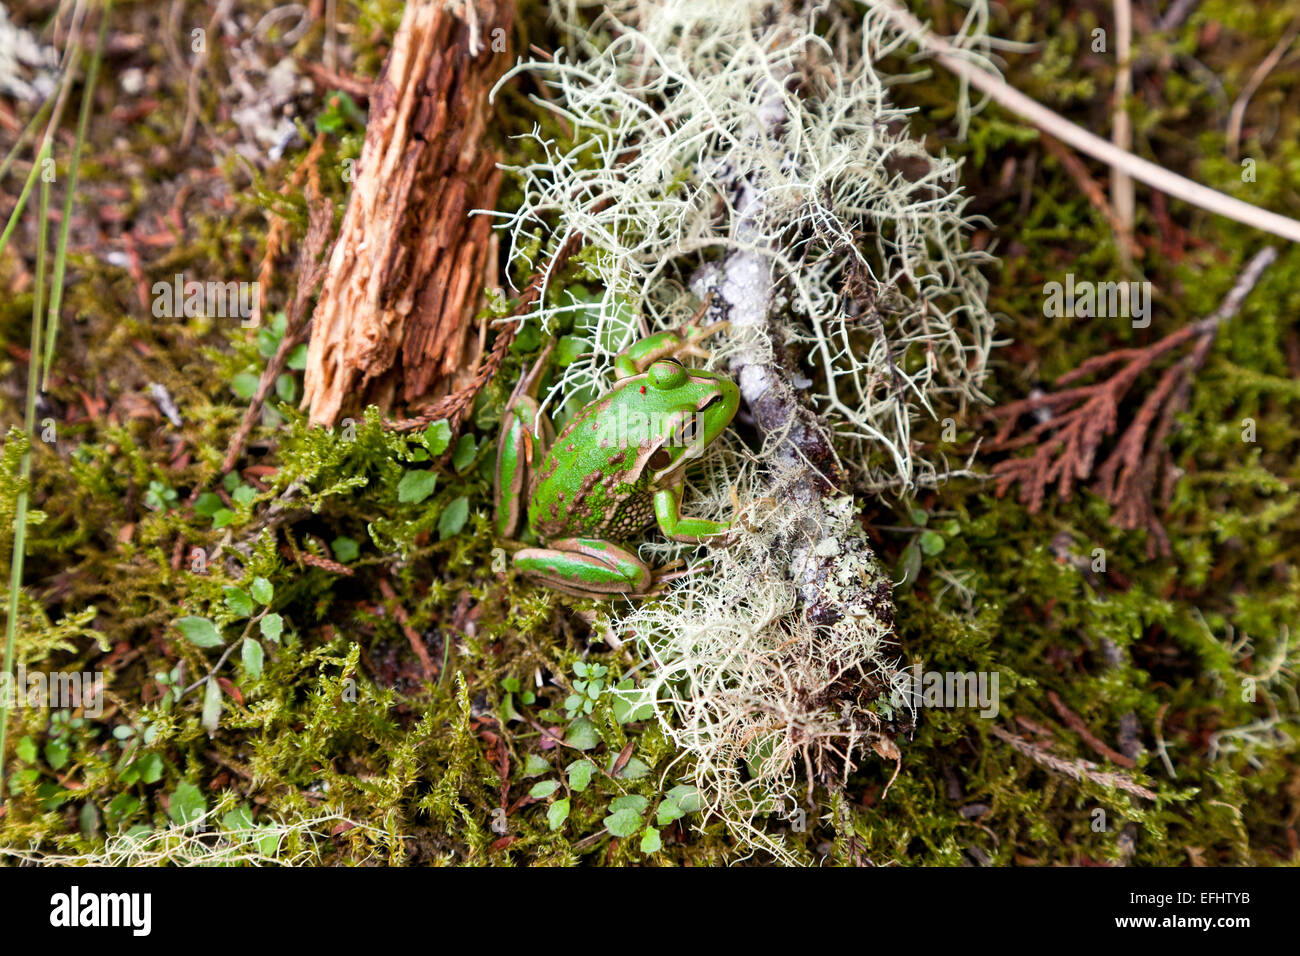 Croaking Grass frog on the forest floor next to white lichen, moss, Whirinaki Forest, North Island, New Zealand - Stock Image